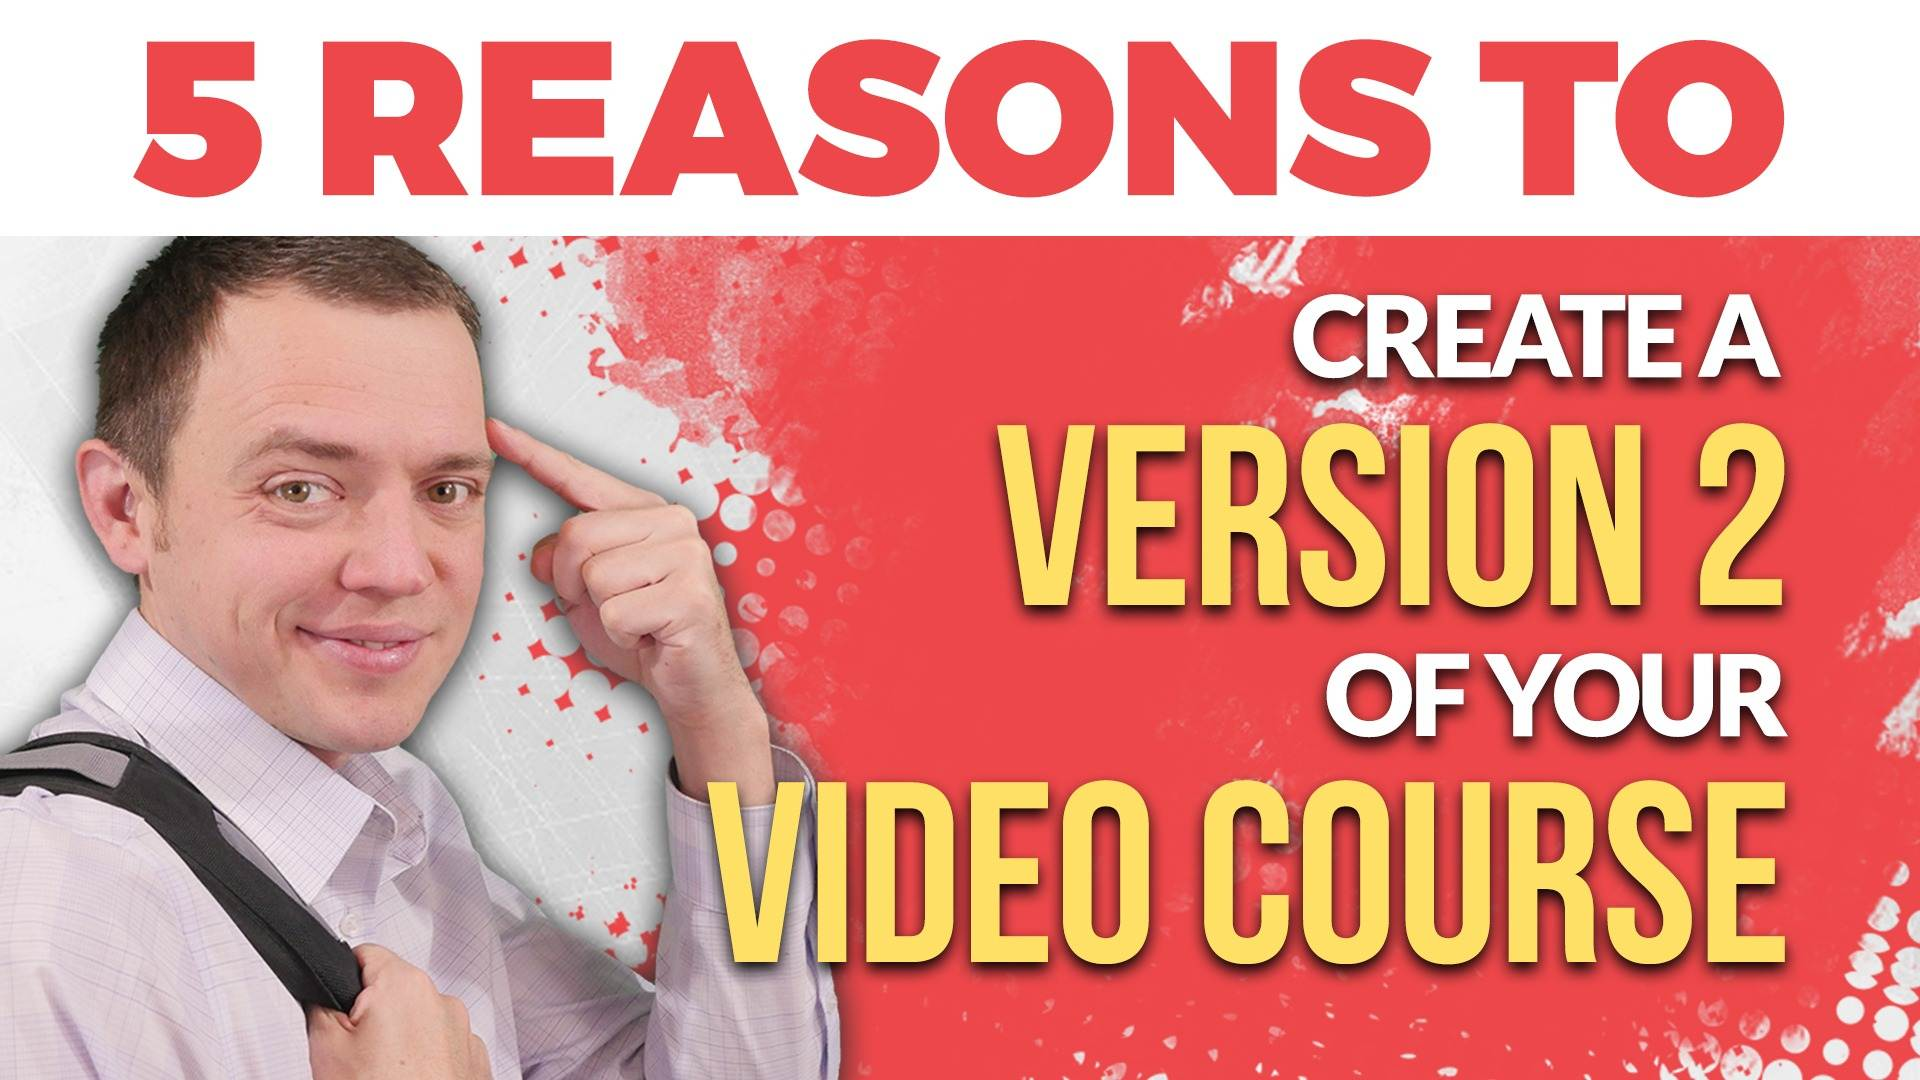 5 Reasons Why Creating a Version 2 of Your Video Course is Smart & Can Get You More Sales!